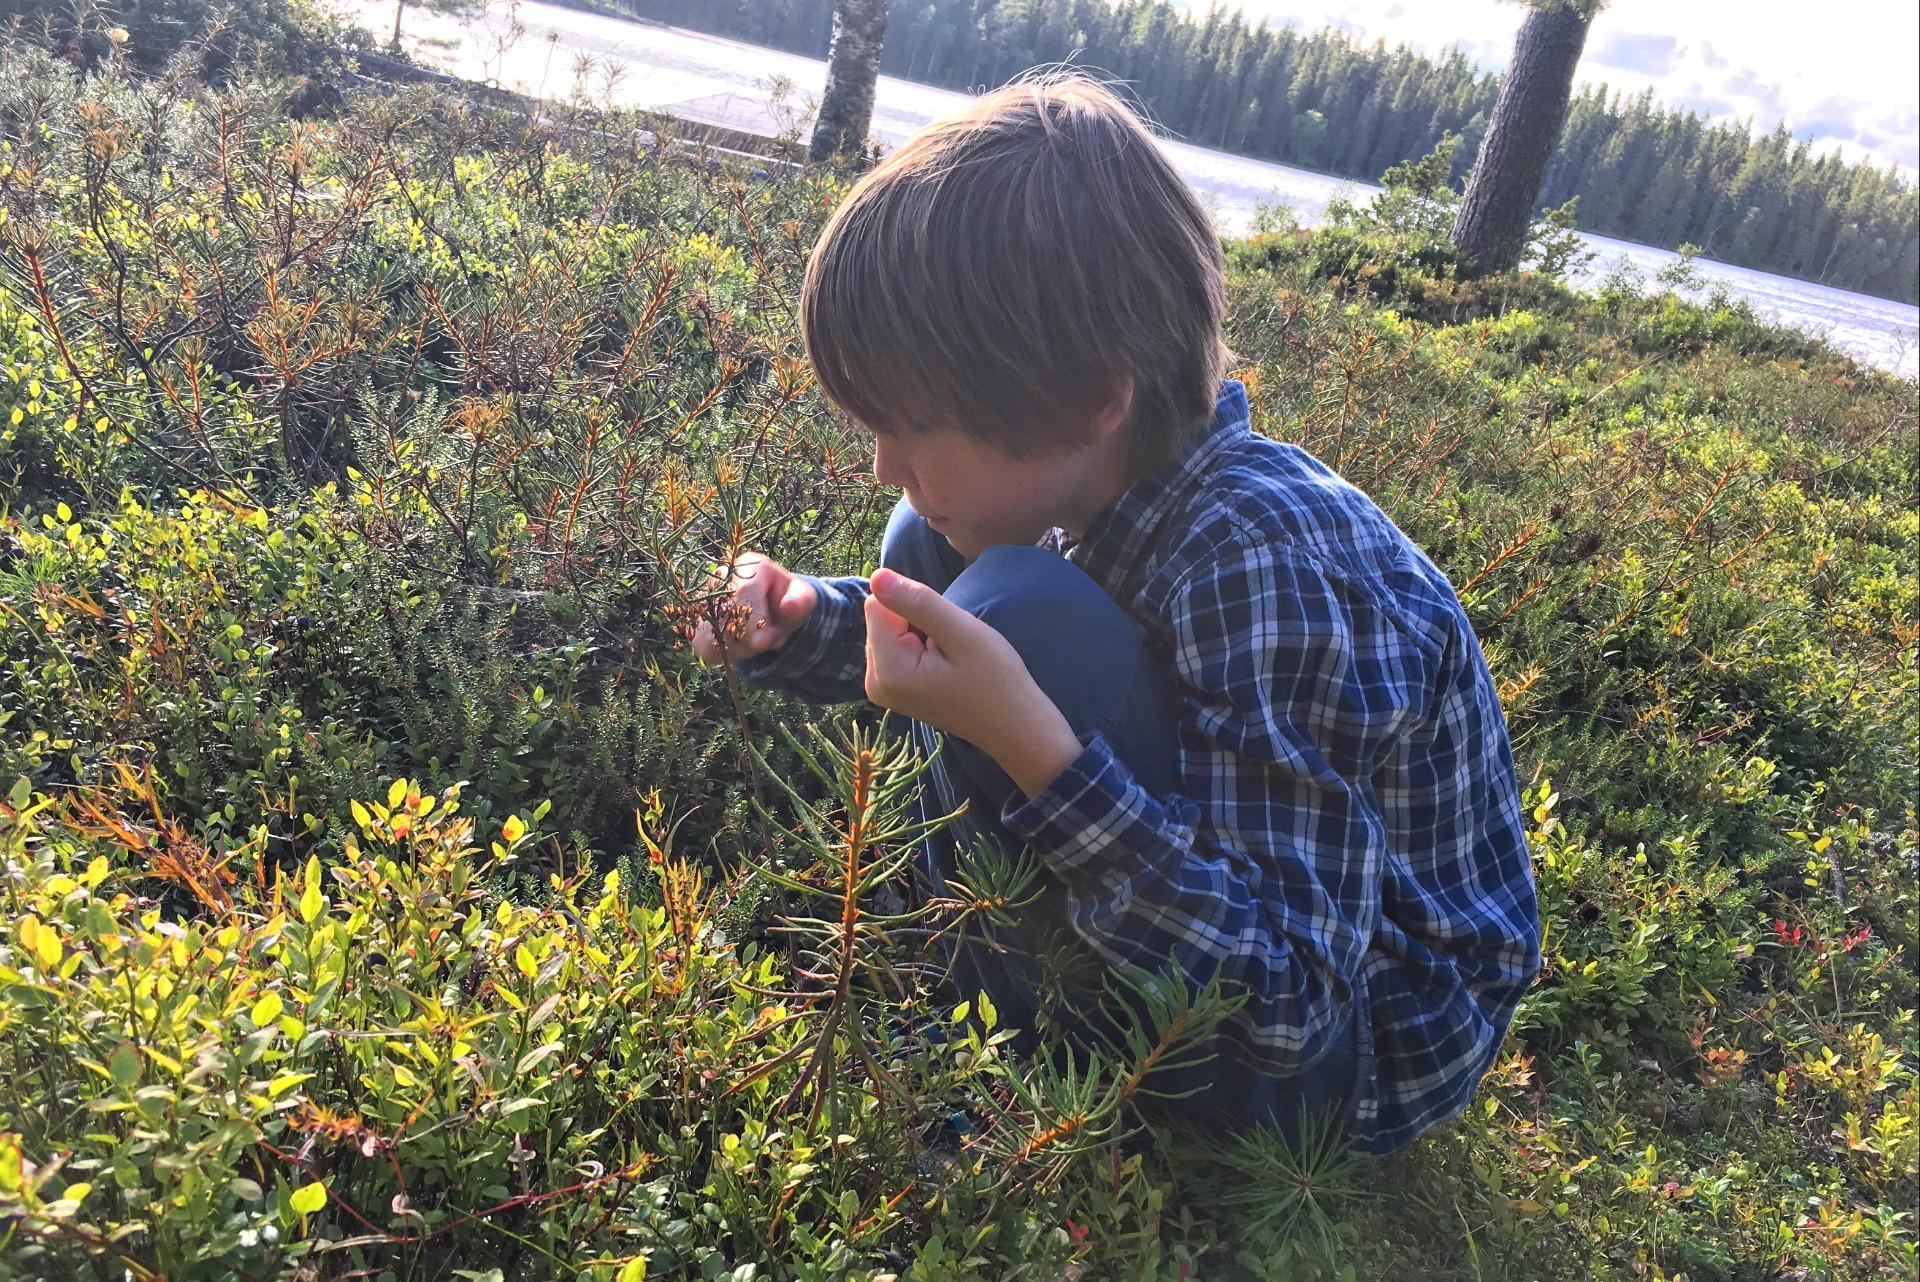 Picking blueberries in Sweden.